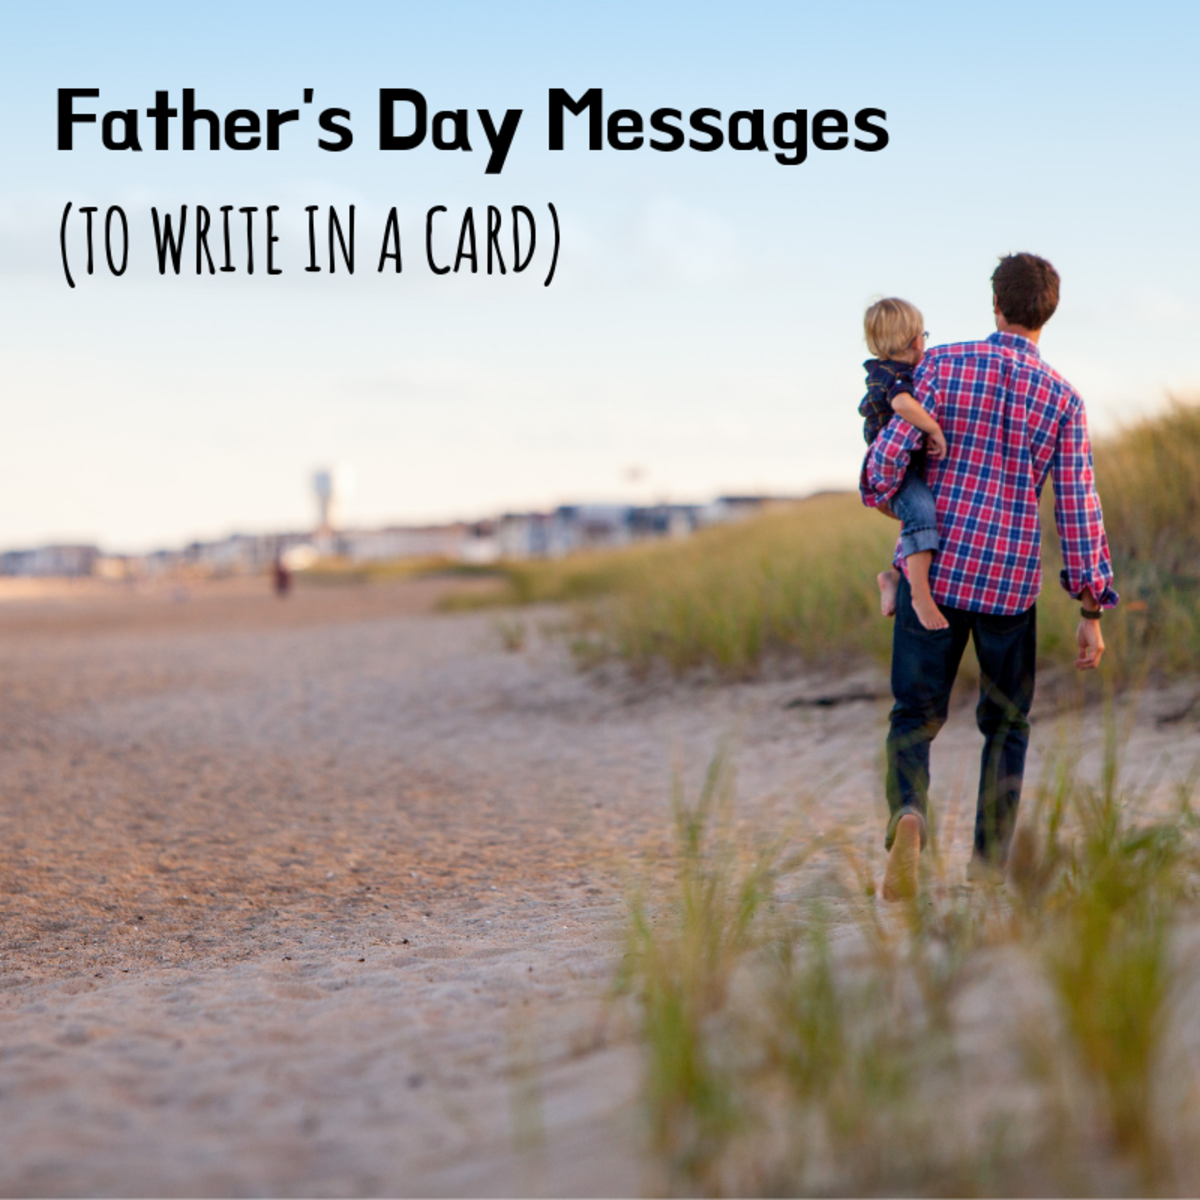 Father's Day Card Messages for Dads, Stepdads, and Grandfathers